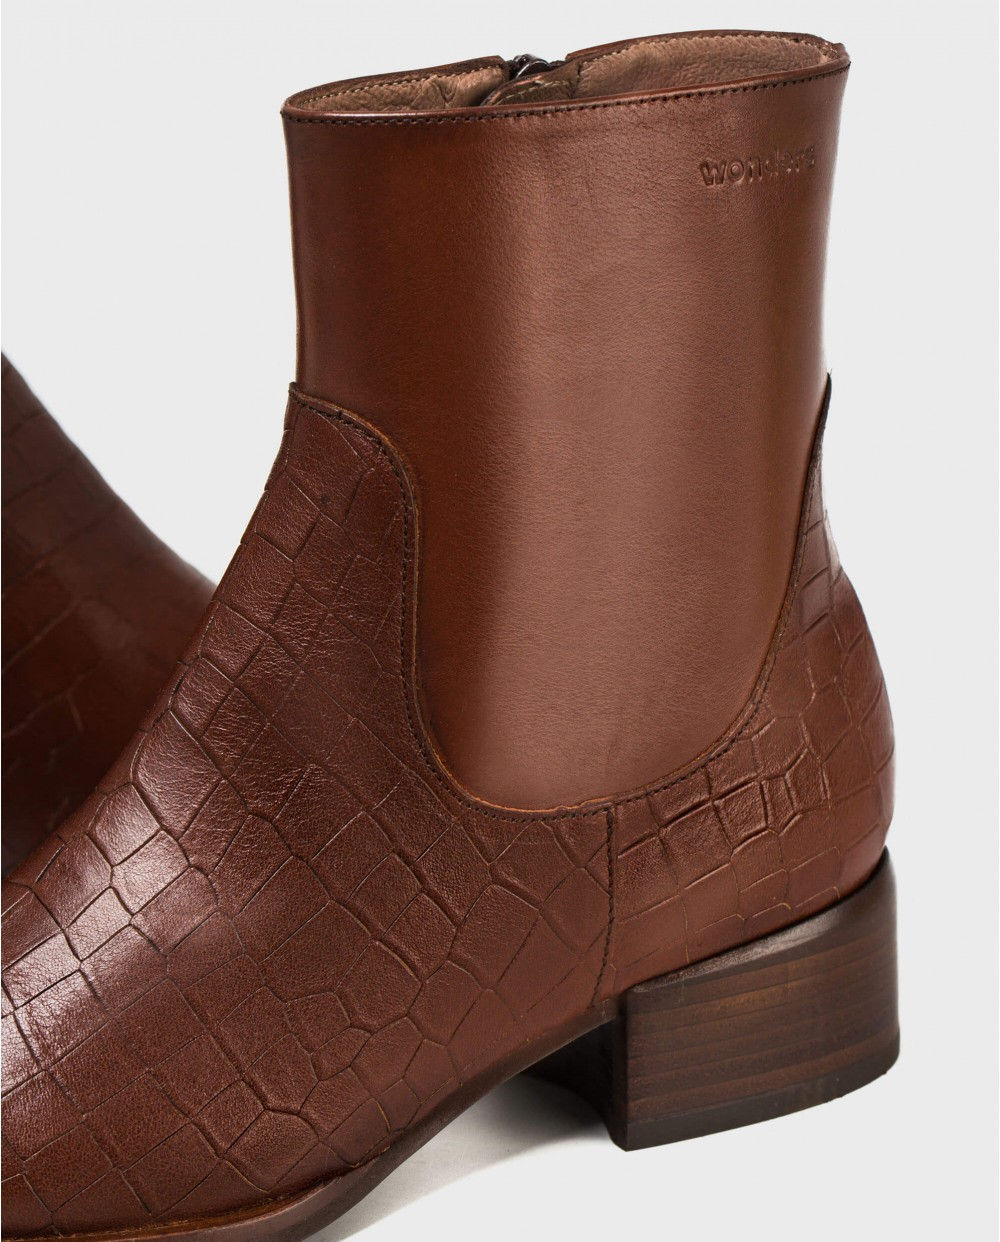 Wonders-Ankle Boots-High leather ankle boots